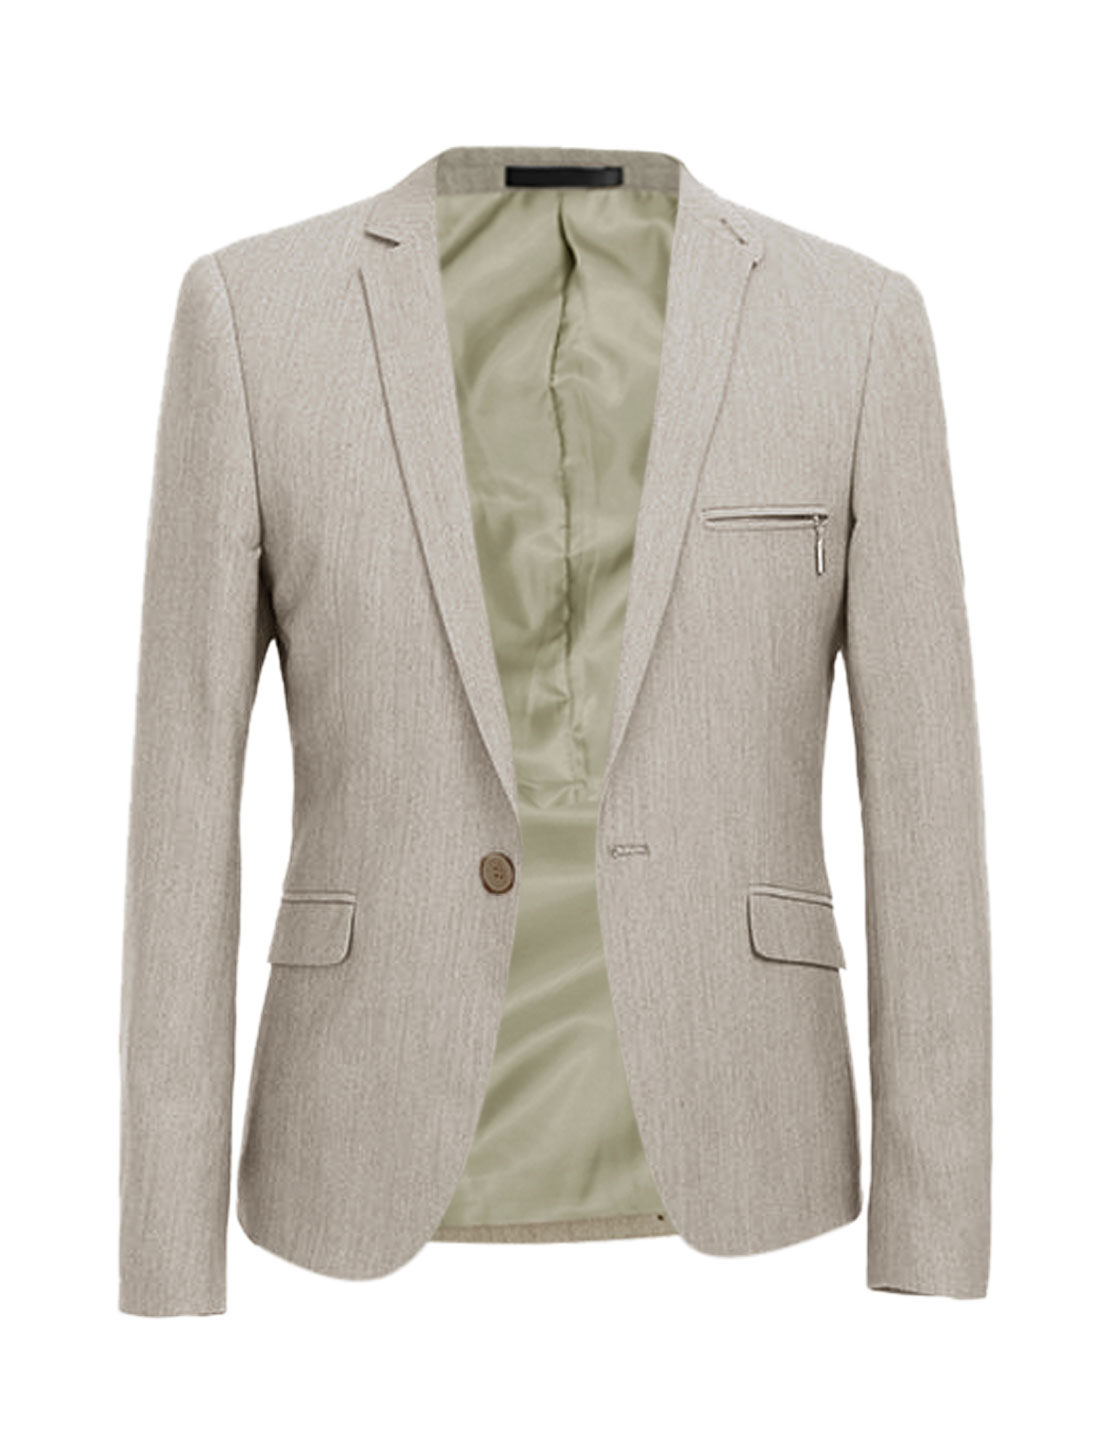 Men Notched Lapel Two Flap Pockets Front Long Sleeves Blazer Beige M